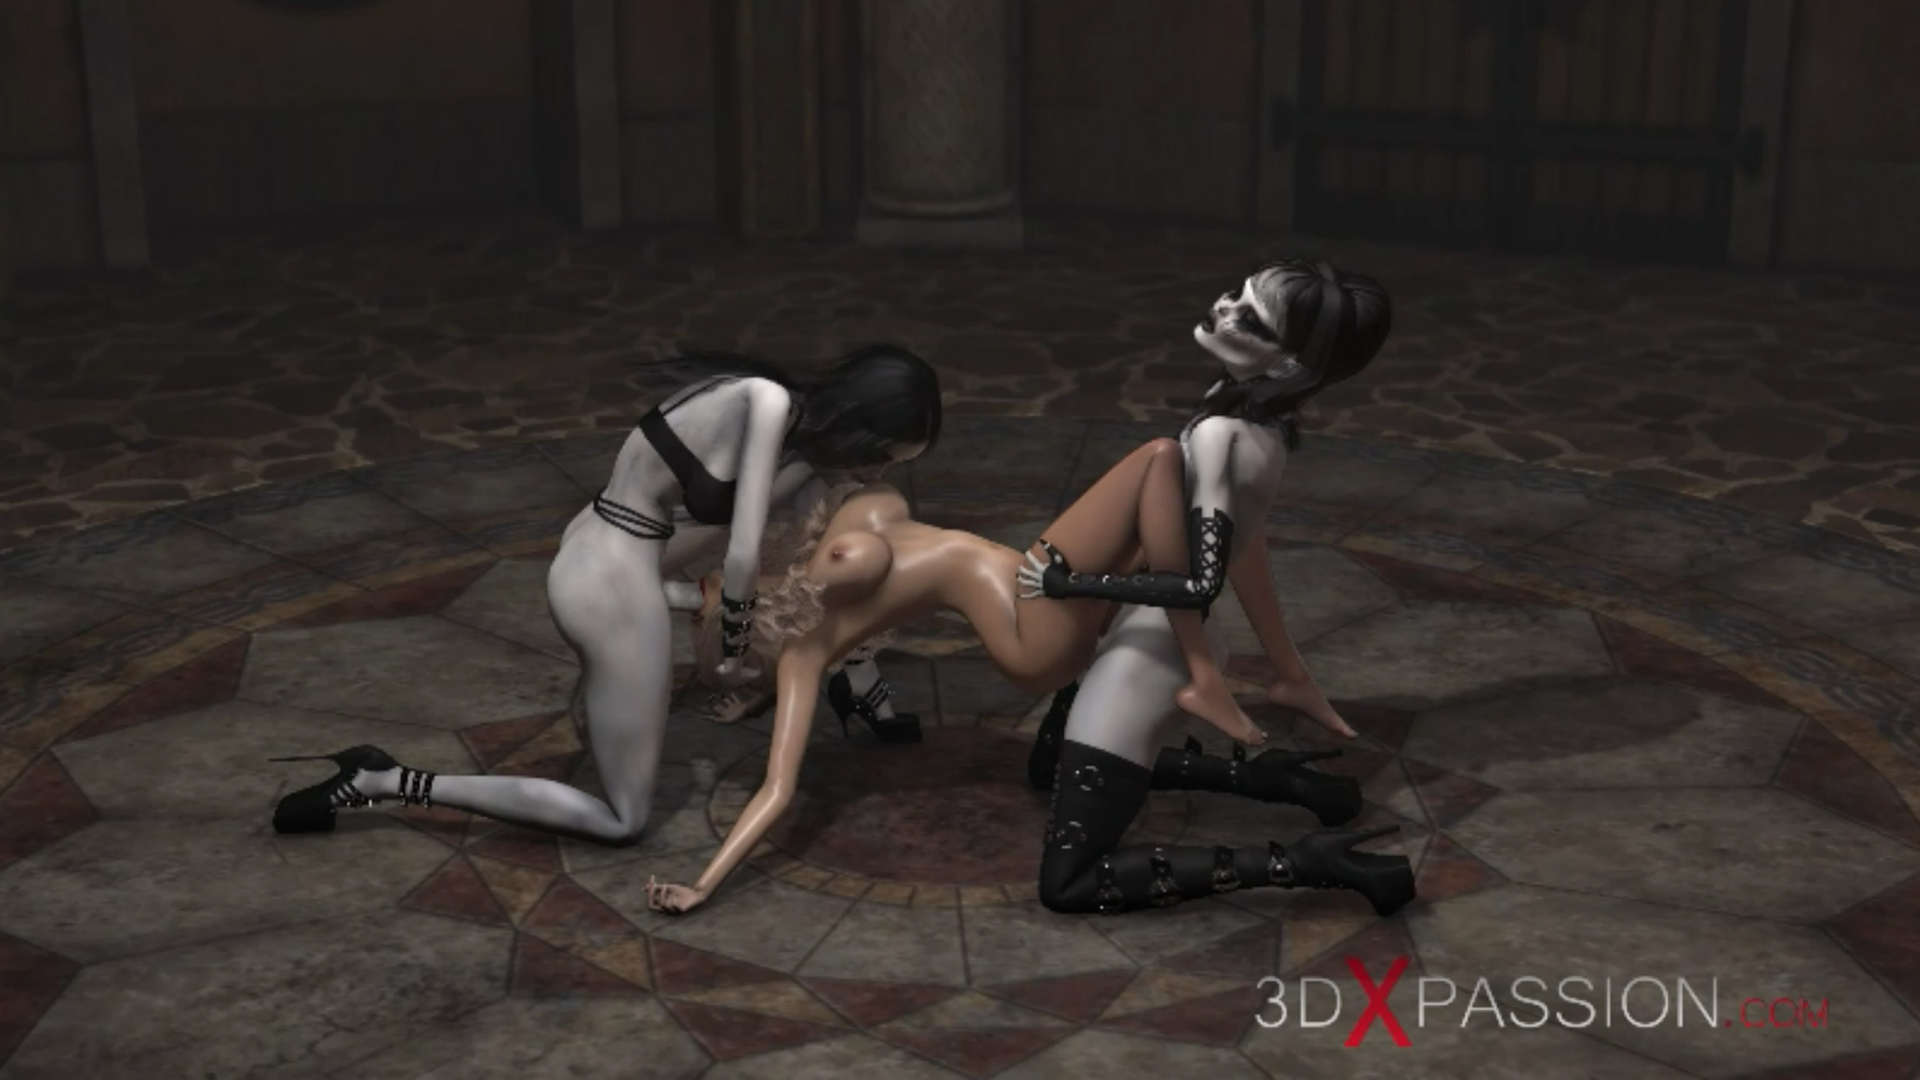 Hot girl slave gets fucked hard by satanic witches in the dark castle double penetration